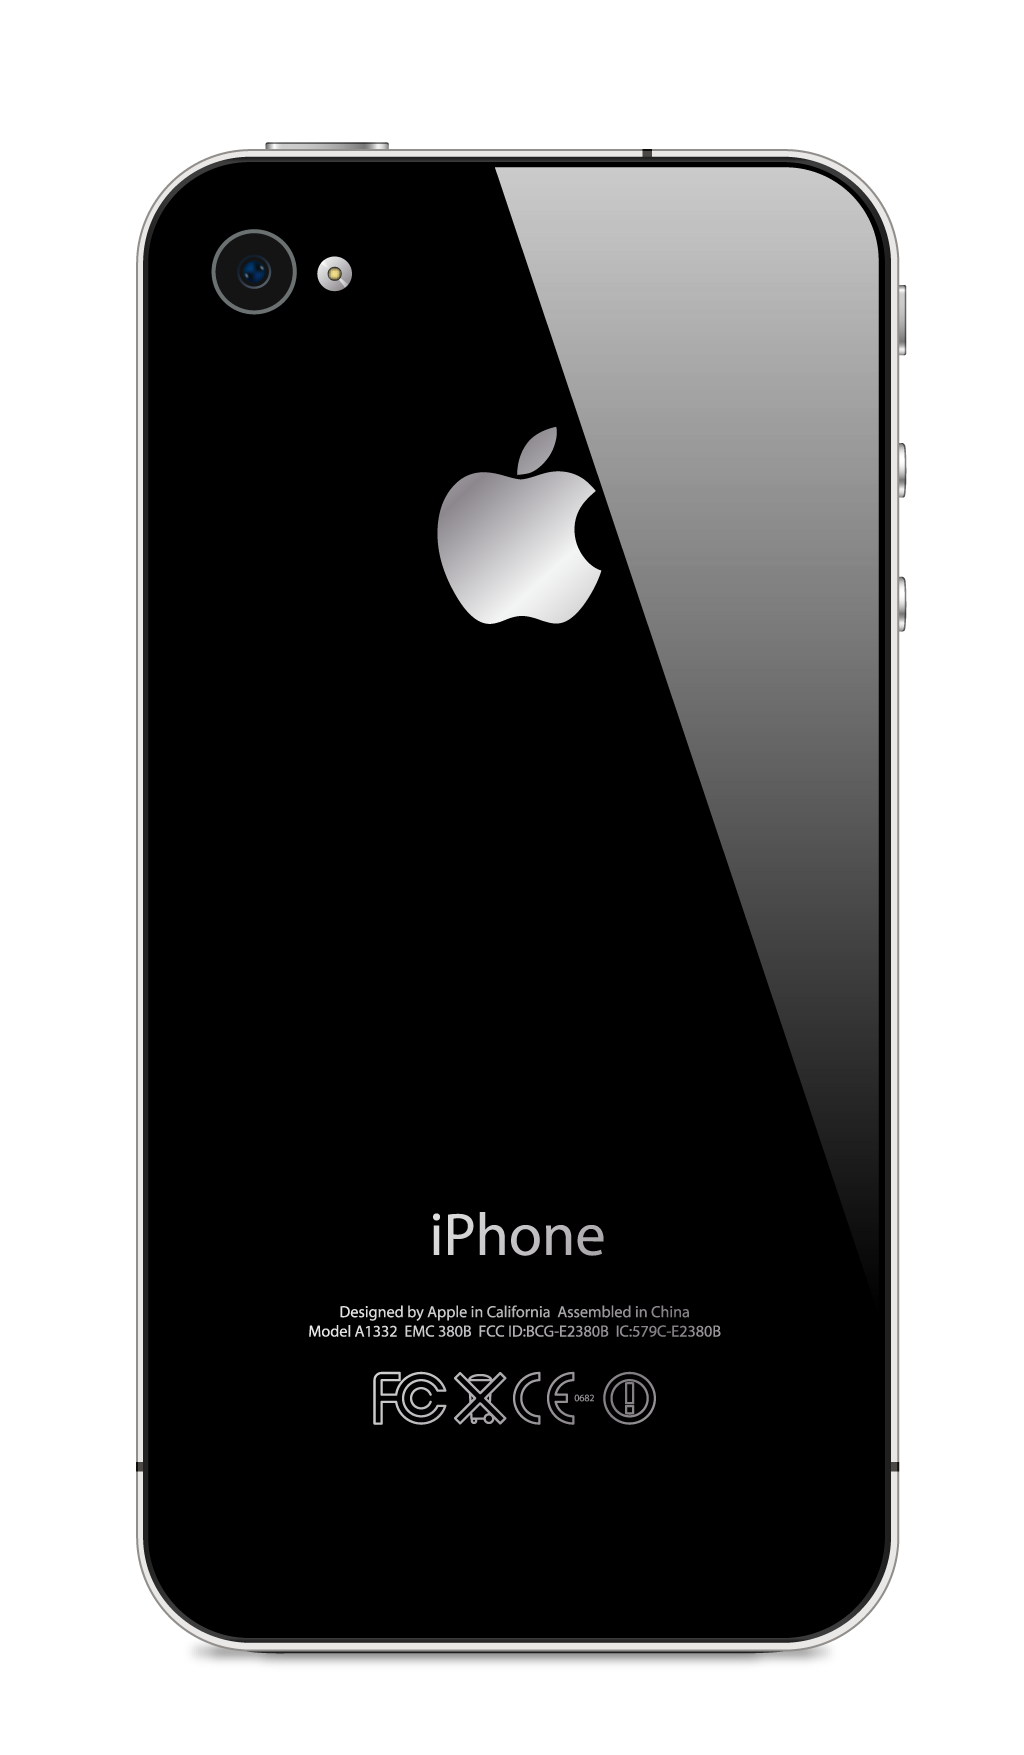 clipart transparent library Iphone Apple PNG images free download